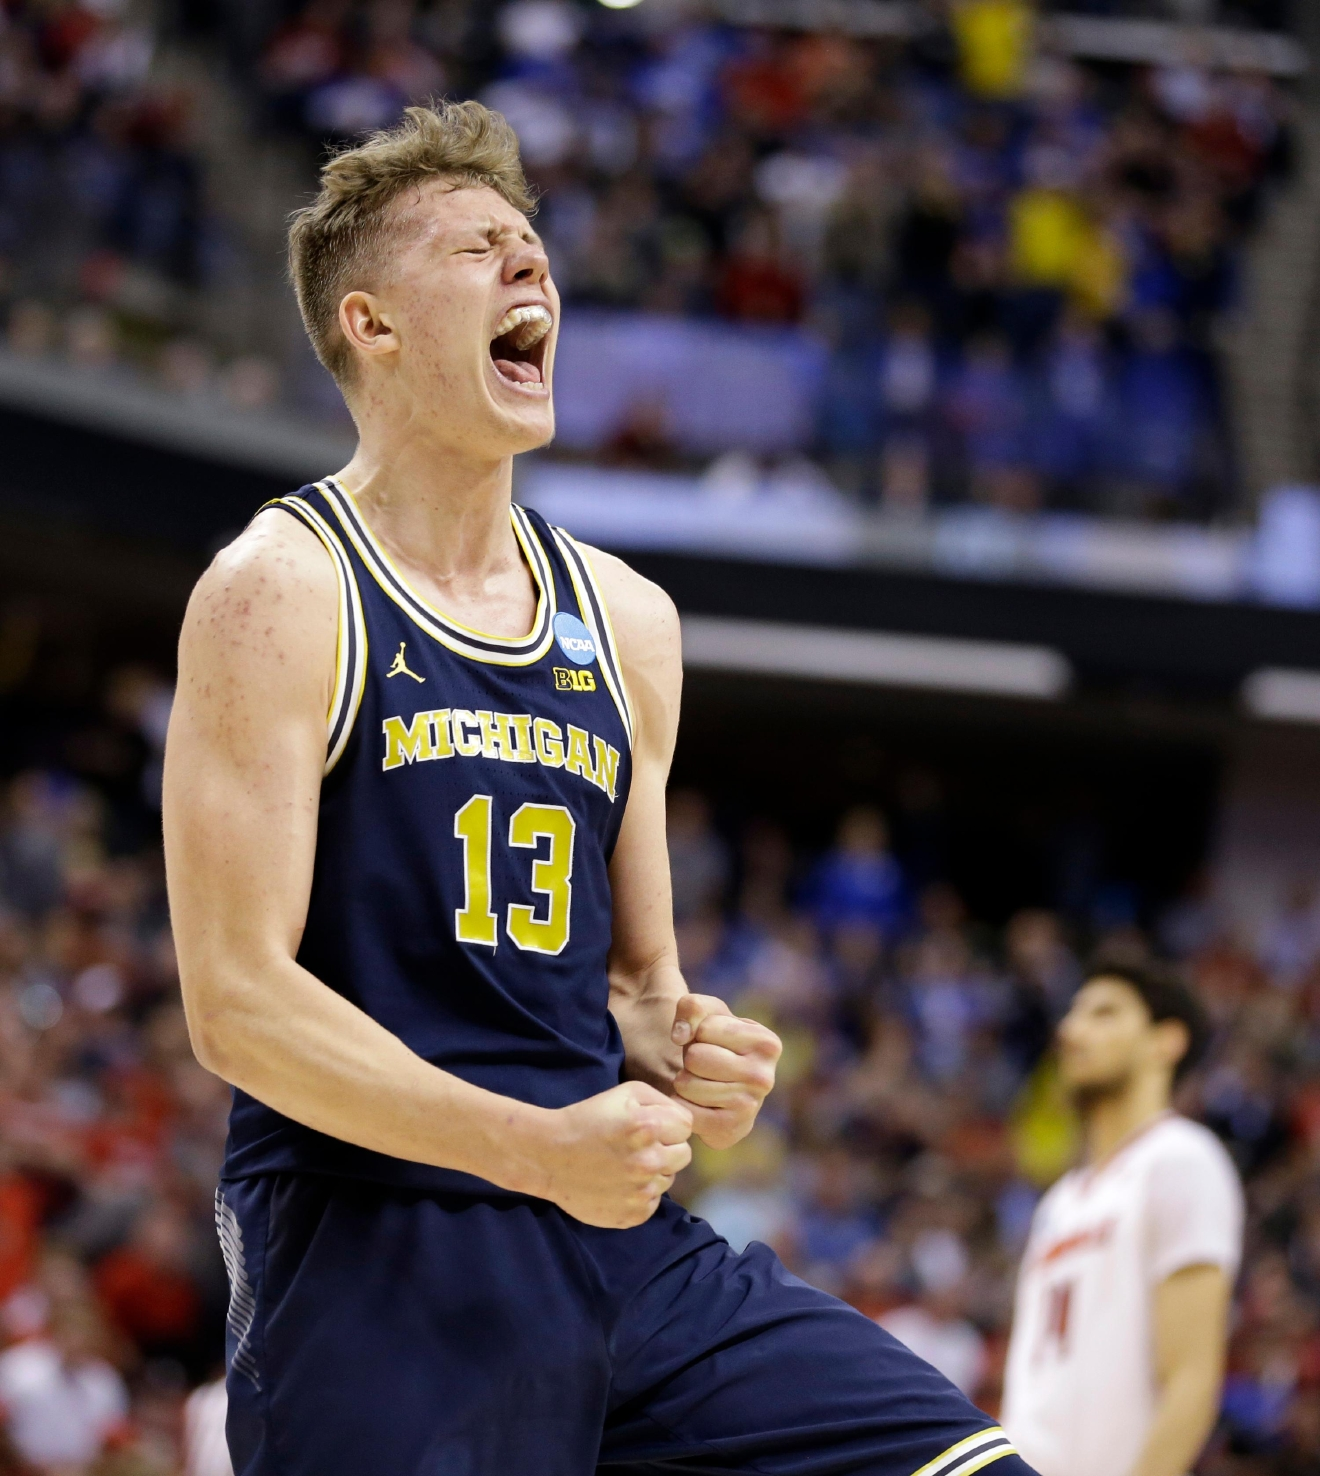 Michigan forward Moritz Wagner (13) celebrates a 73-69 win over Louisville in a second-round game in the men?s NCAA college basketball tournament in Indianapolis, Sunday, March 19, 2017. (AP Photo/Michael Conroy)